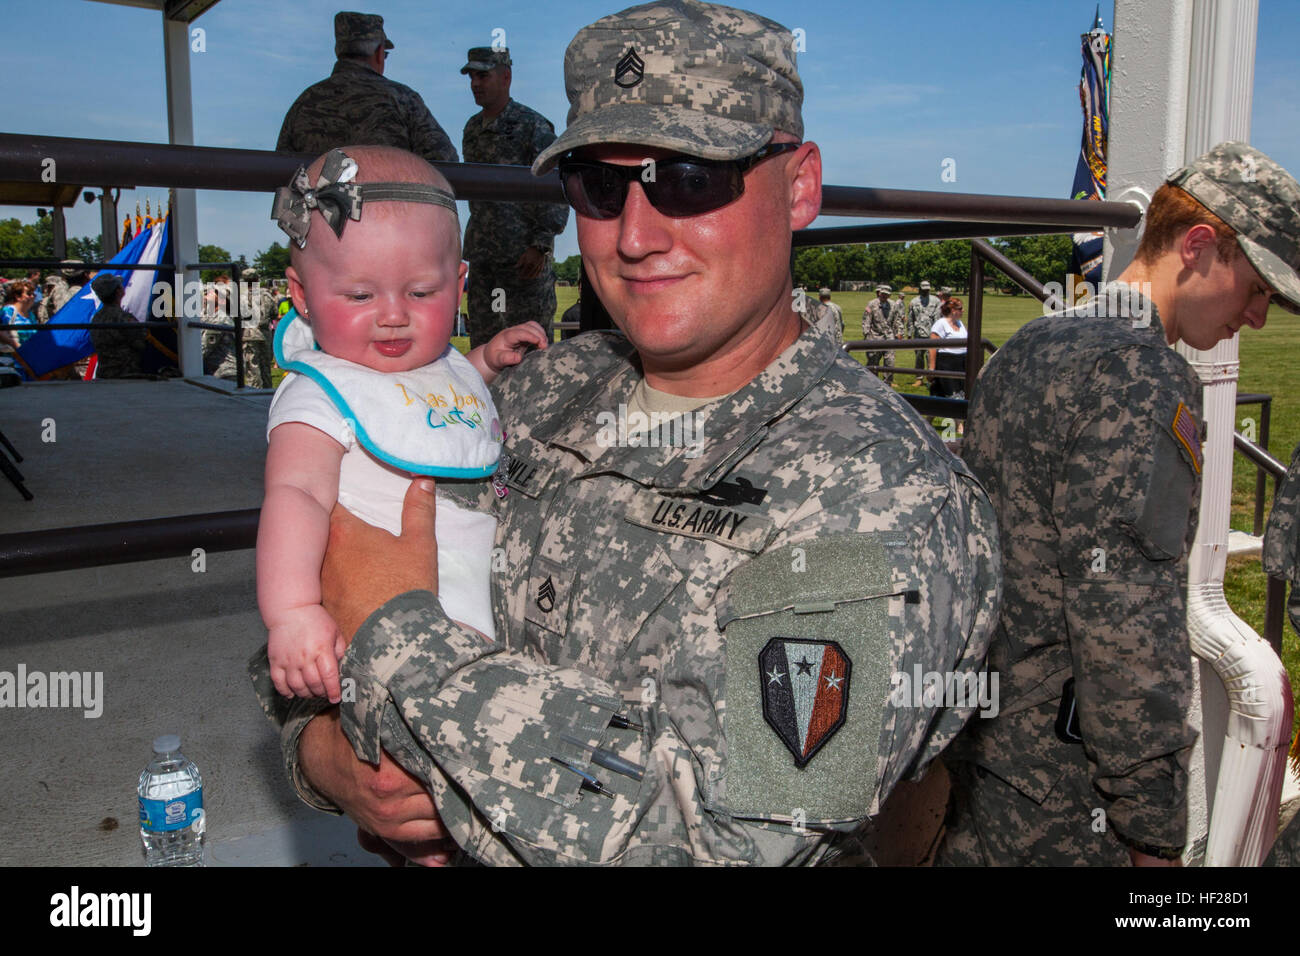 Staff Sgt. Mark Towle, B Company, 1-114th Infantry, New Jersey Army National Guard, spends time with his daughter - Stock Image